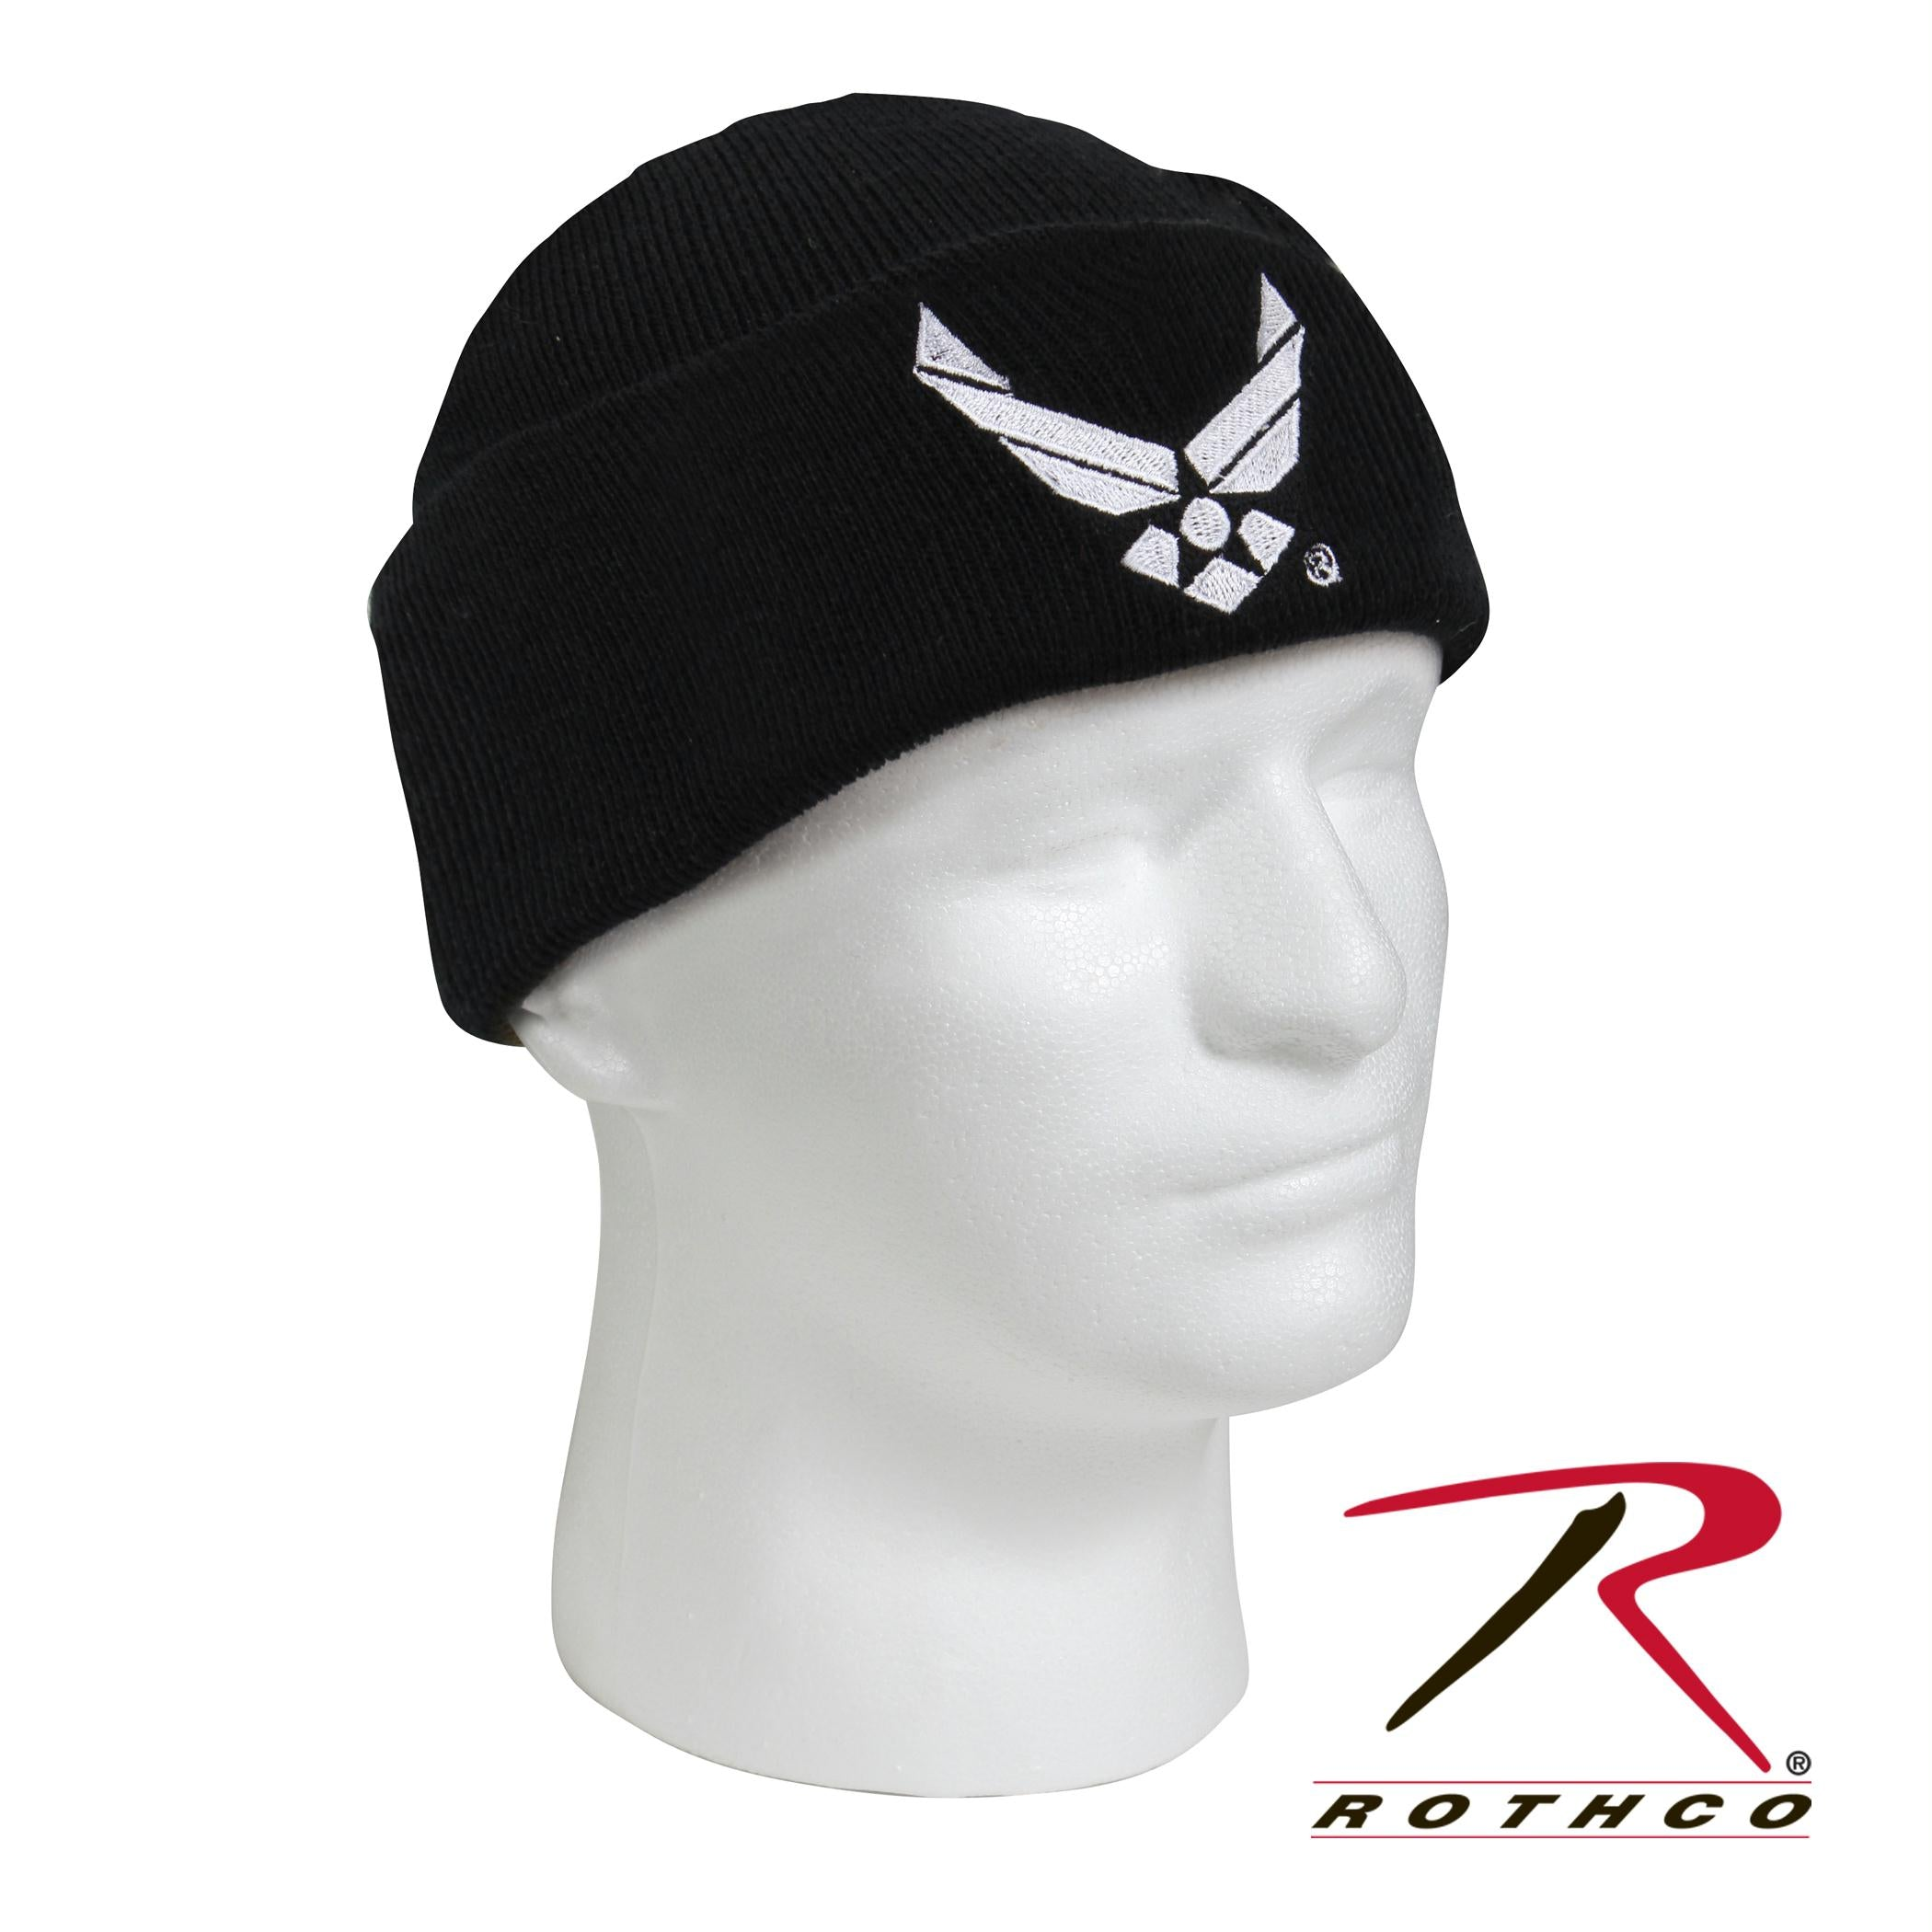 Rothco Embroidered Military Watch Cap